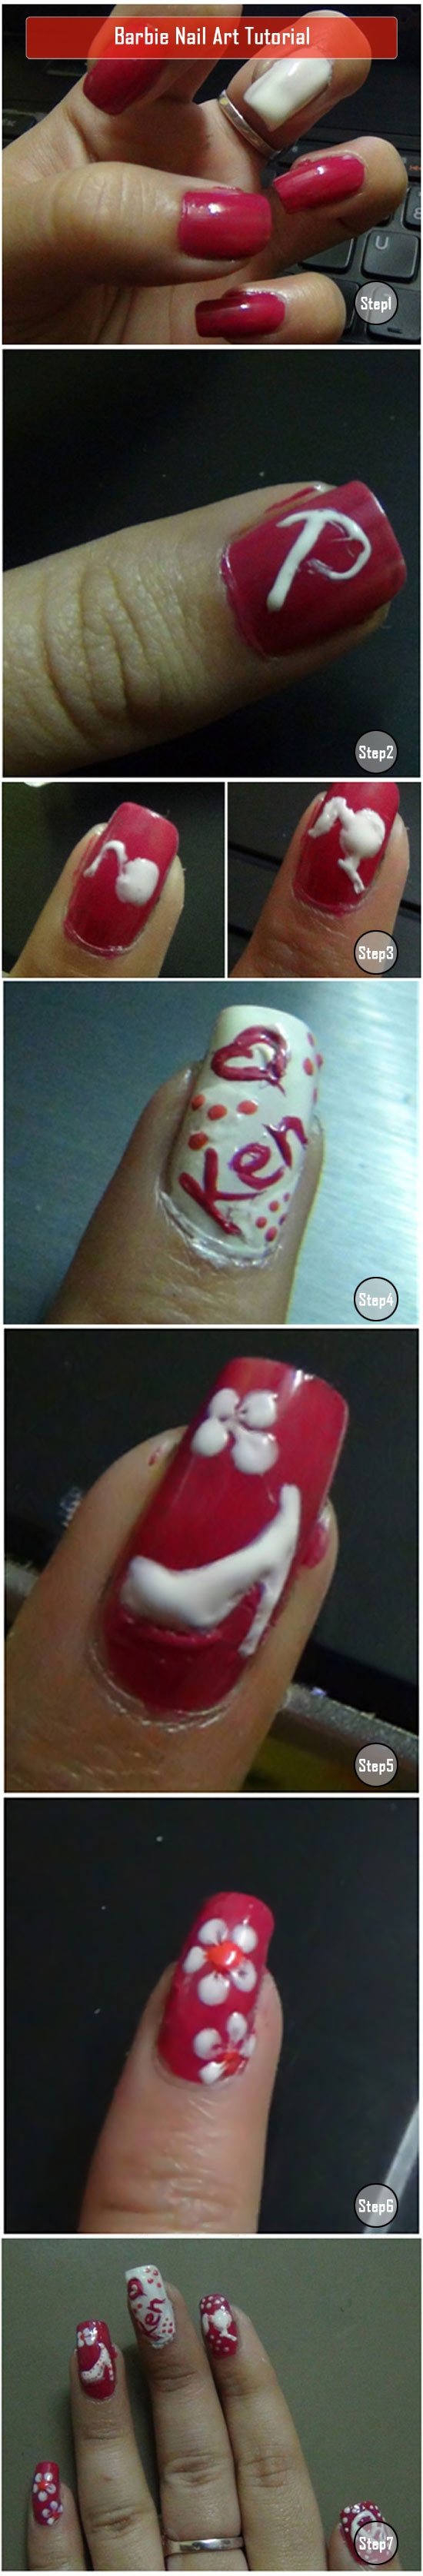 How to do nail art at home cool nail artwork ideas - Different nail designs to do at home ...